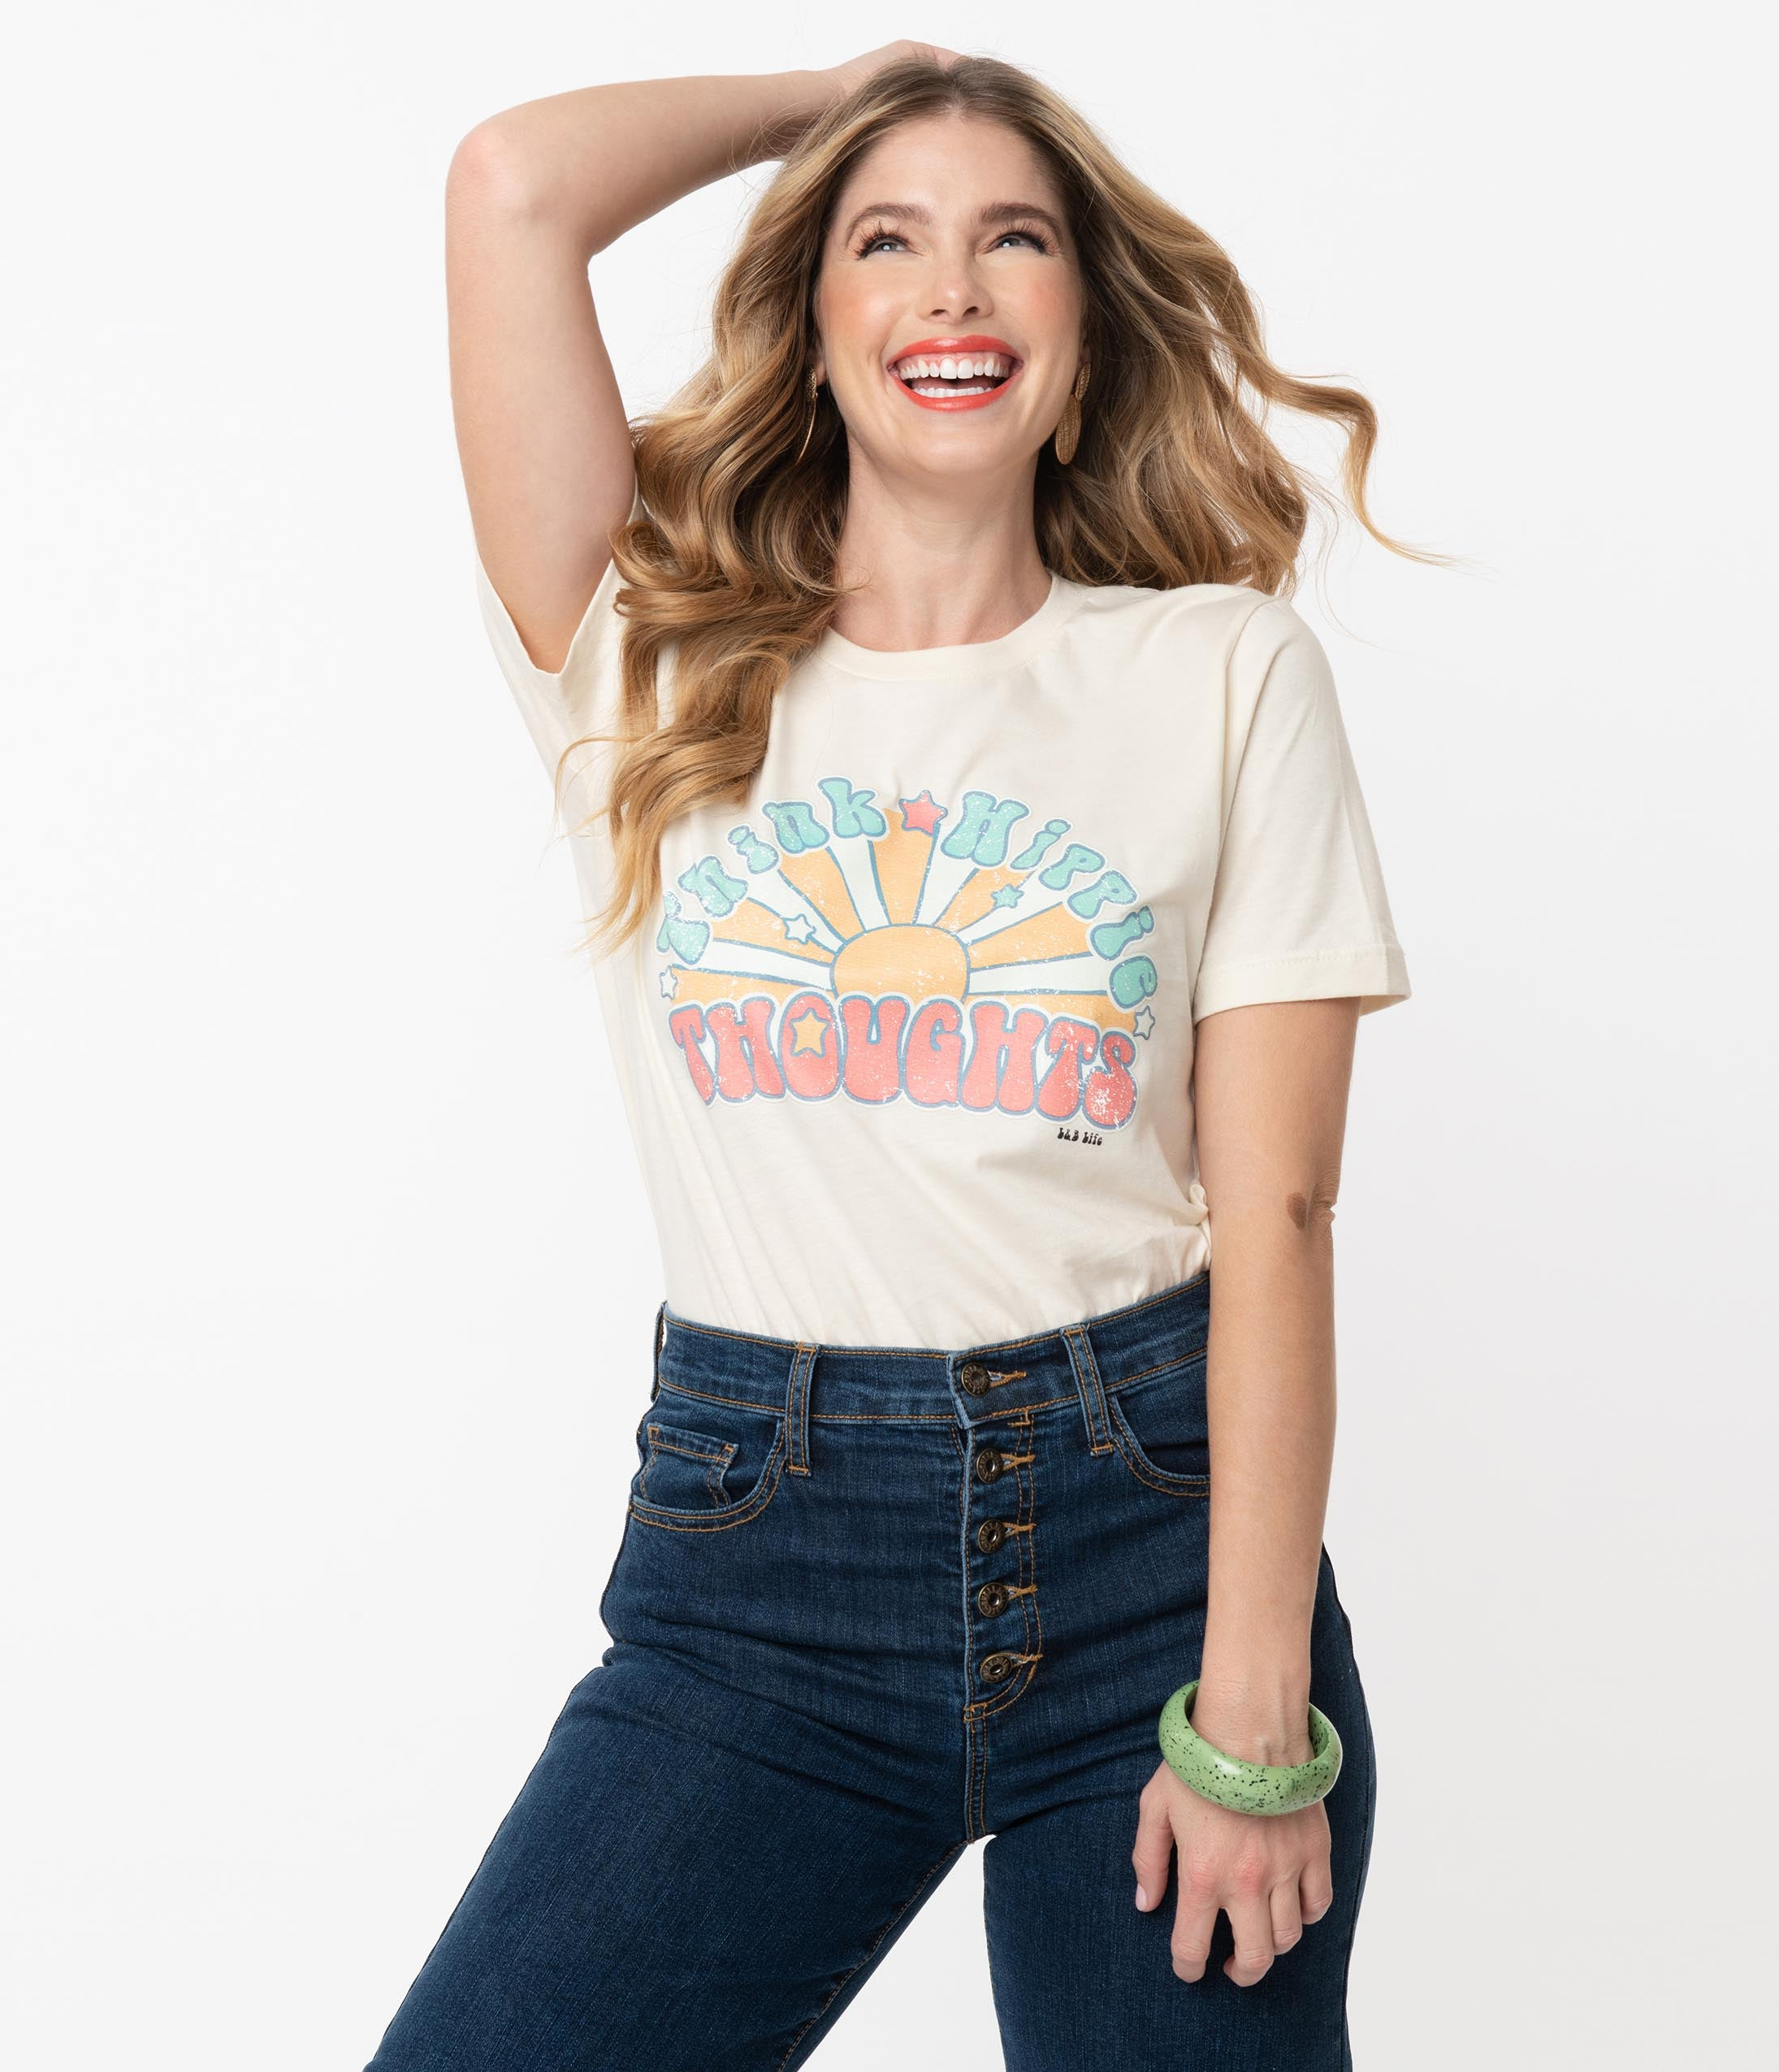 Shop Queen's Gambit Outfits – 60s Clothes Think Hippie Thoughts Unisex Distressed Graphic Tee $36.00 AT vintagedancer.com